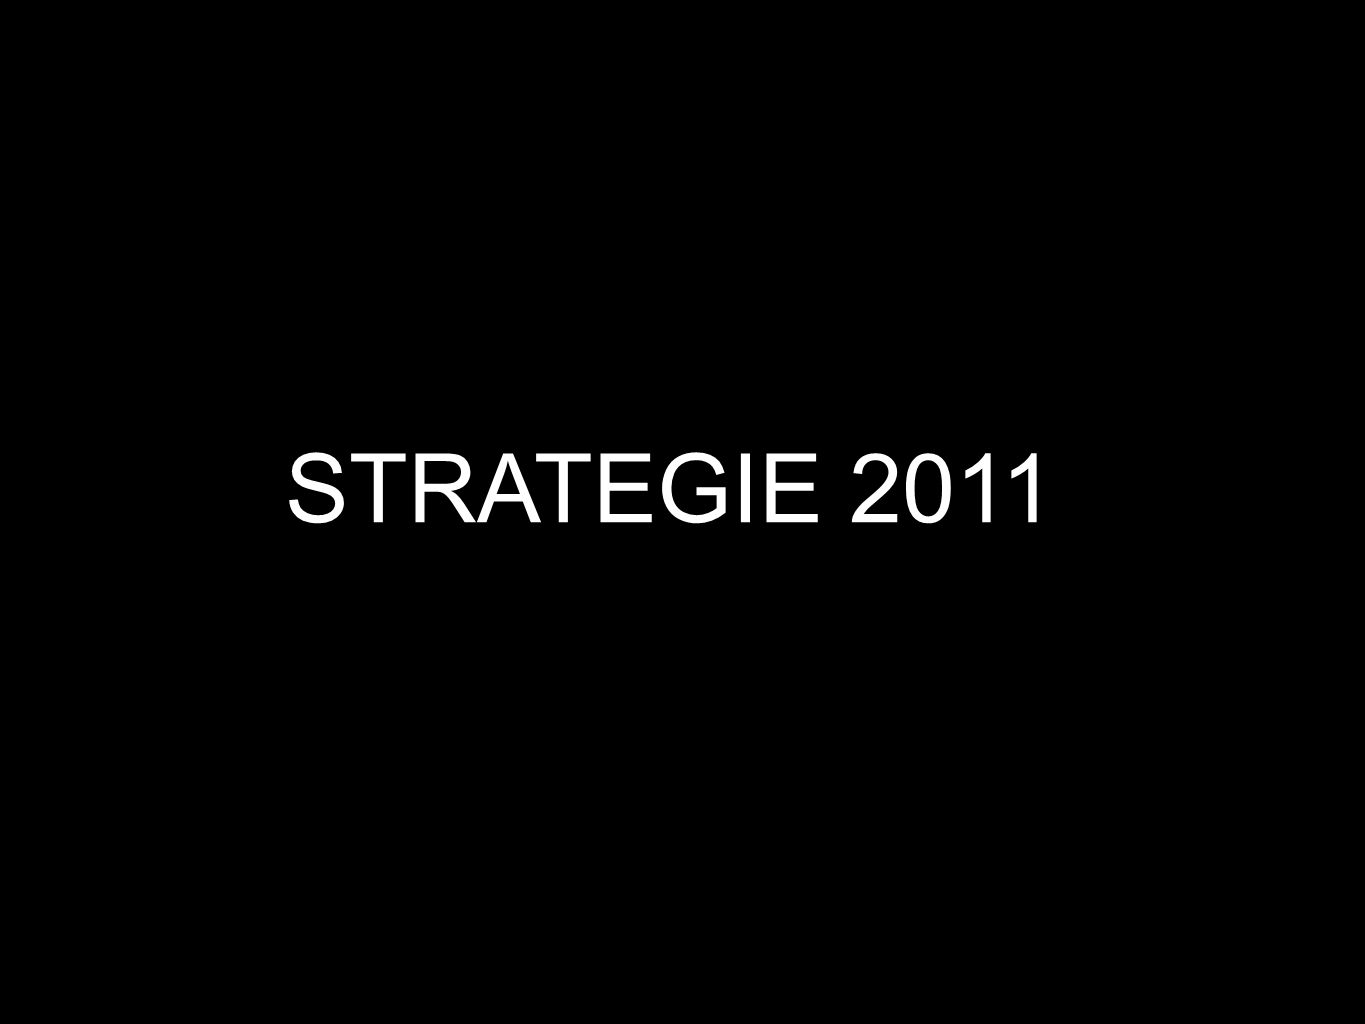 STRATEGIE 2011